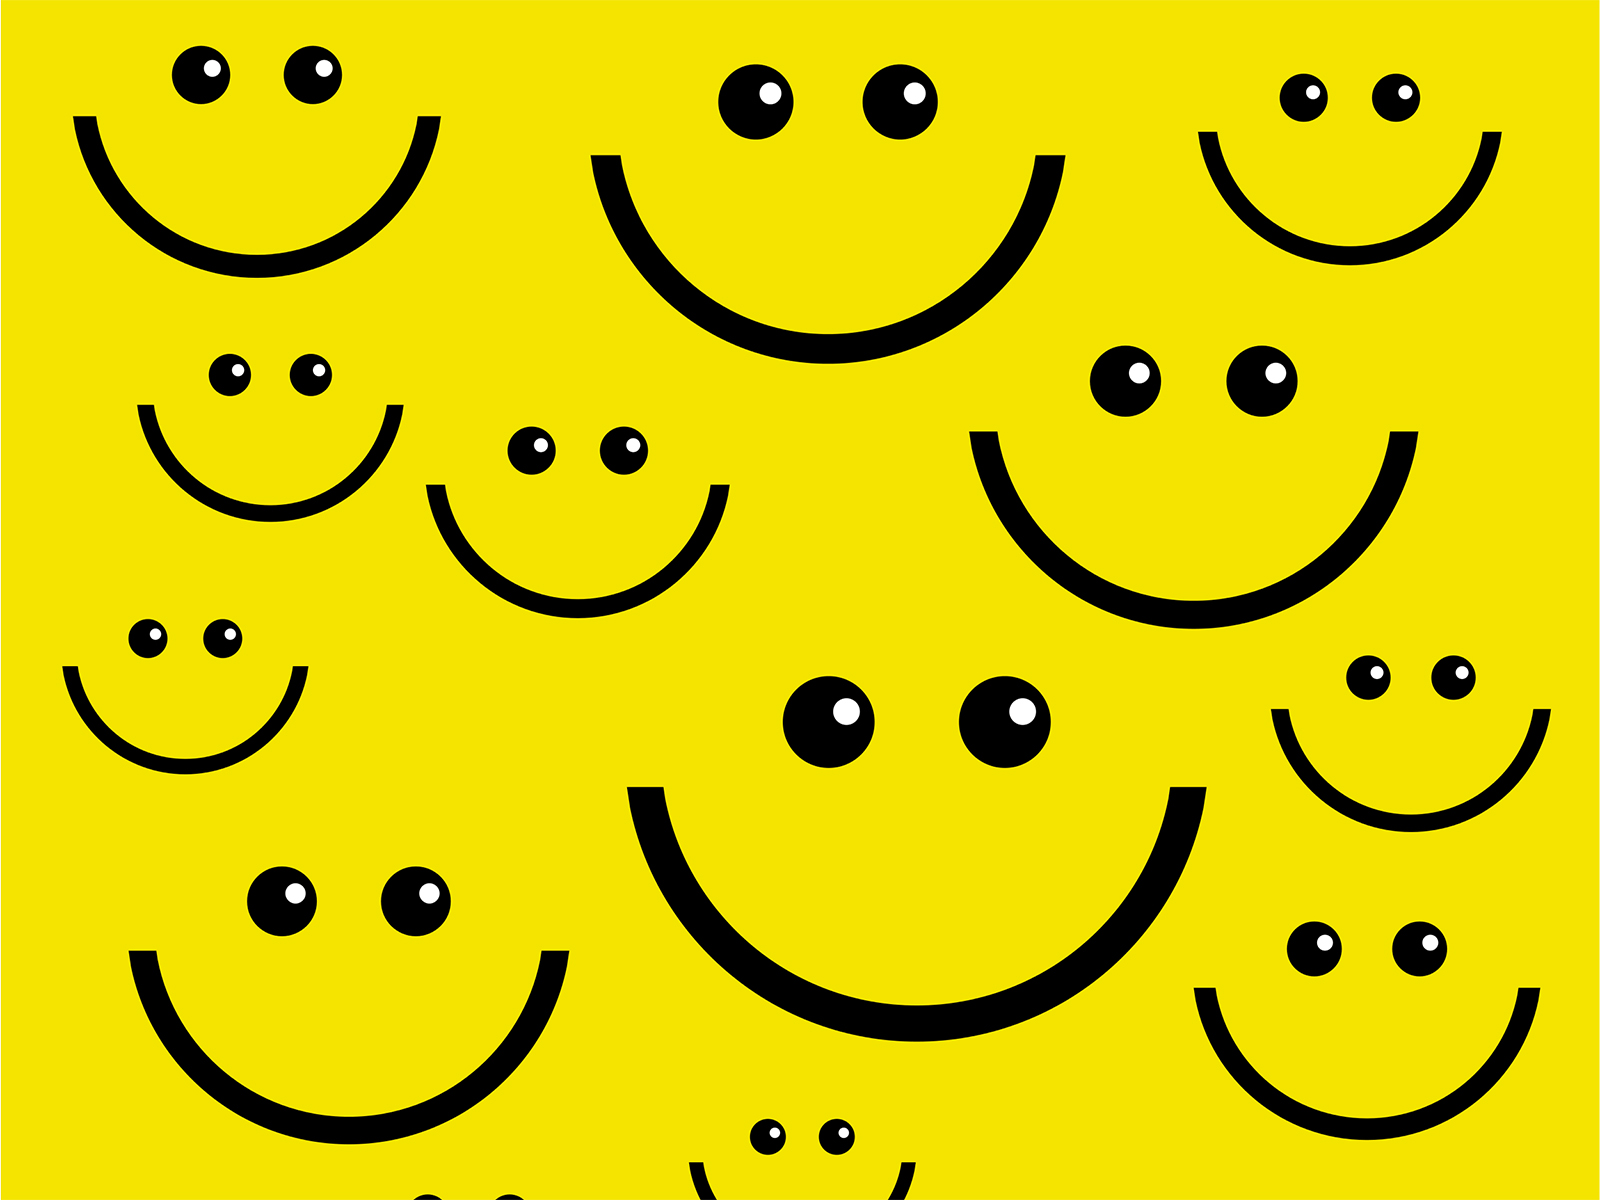 Smile Face Backgrounds Black Design Yellow Templates